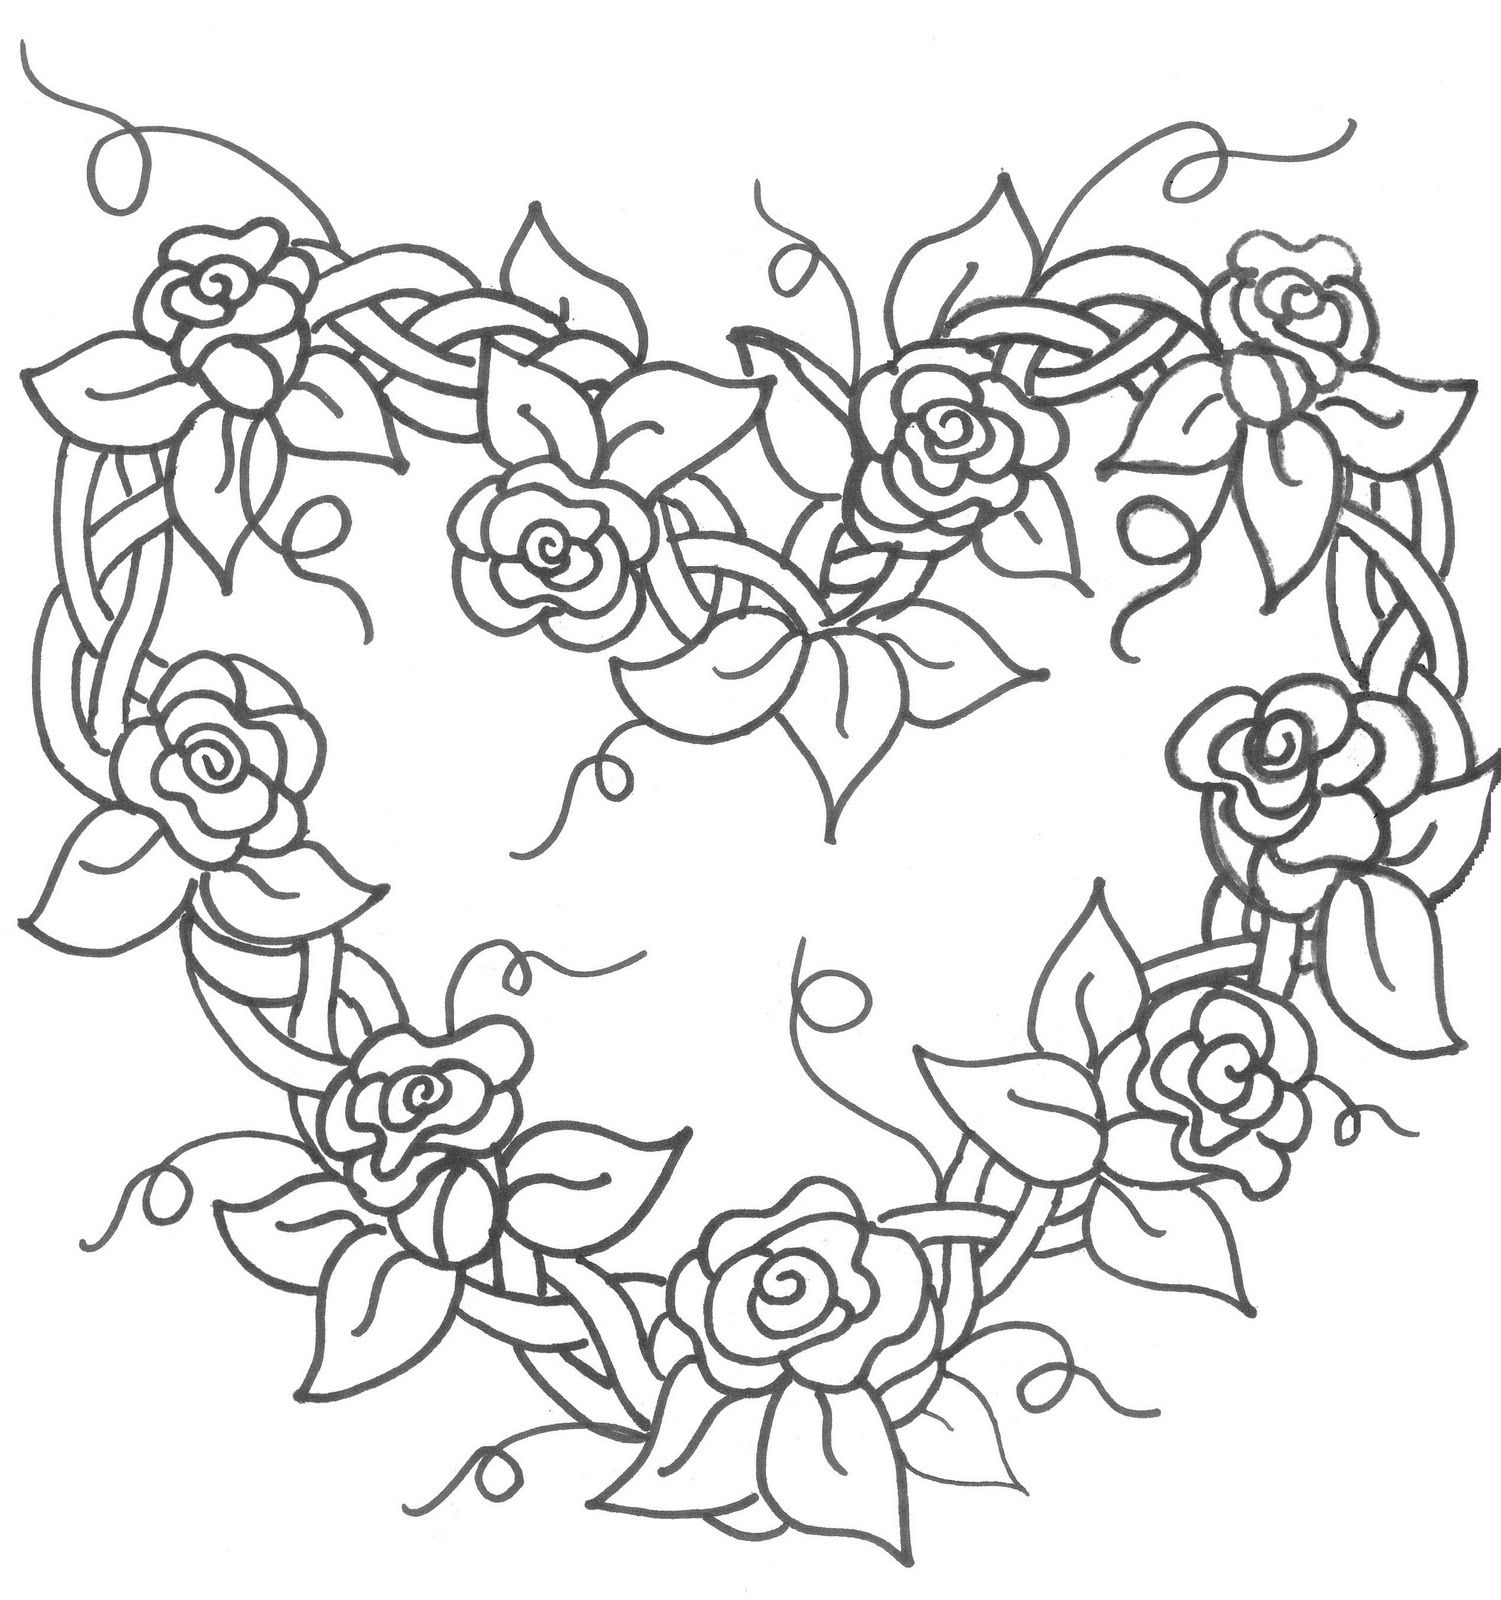 rose garland coloring pages - photo#16